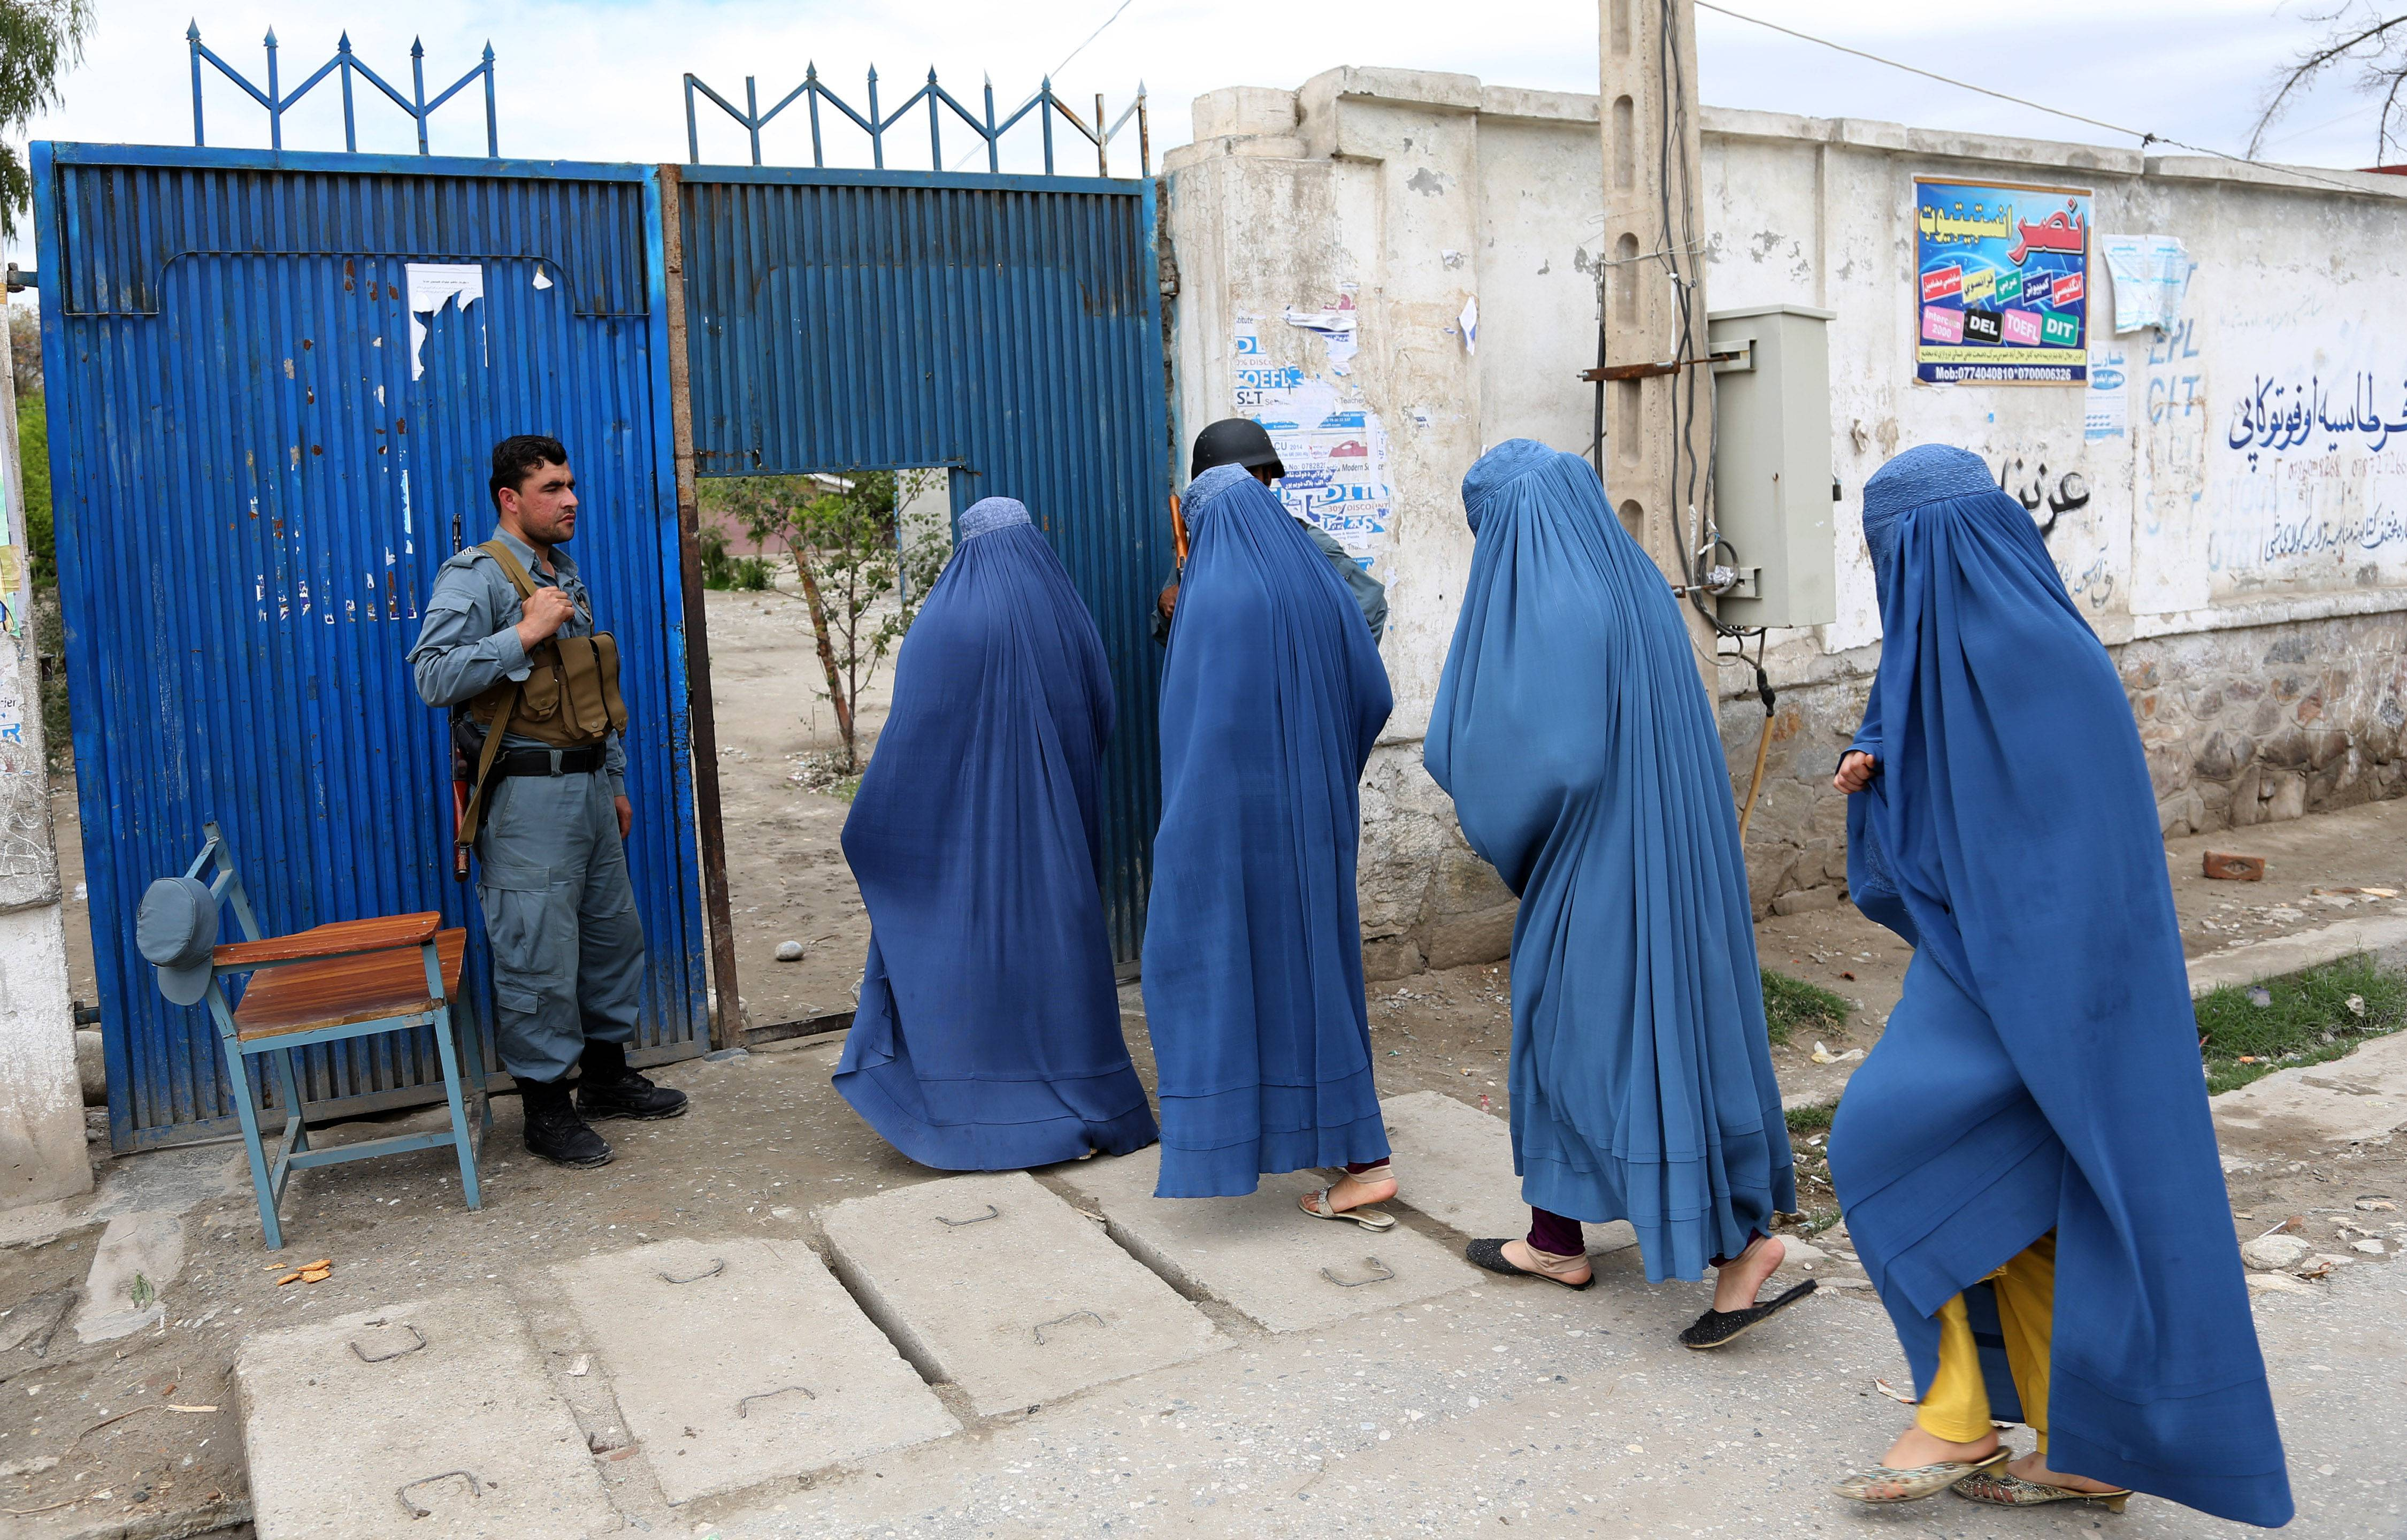 Afghan women enter a polling station to vote in Jalalabad, east of Kabul, Afghanistan, Saturday.